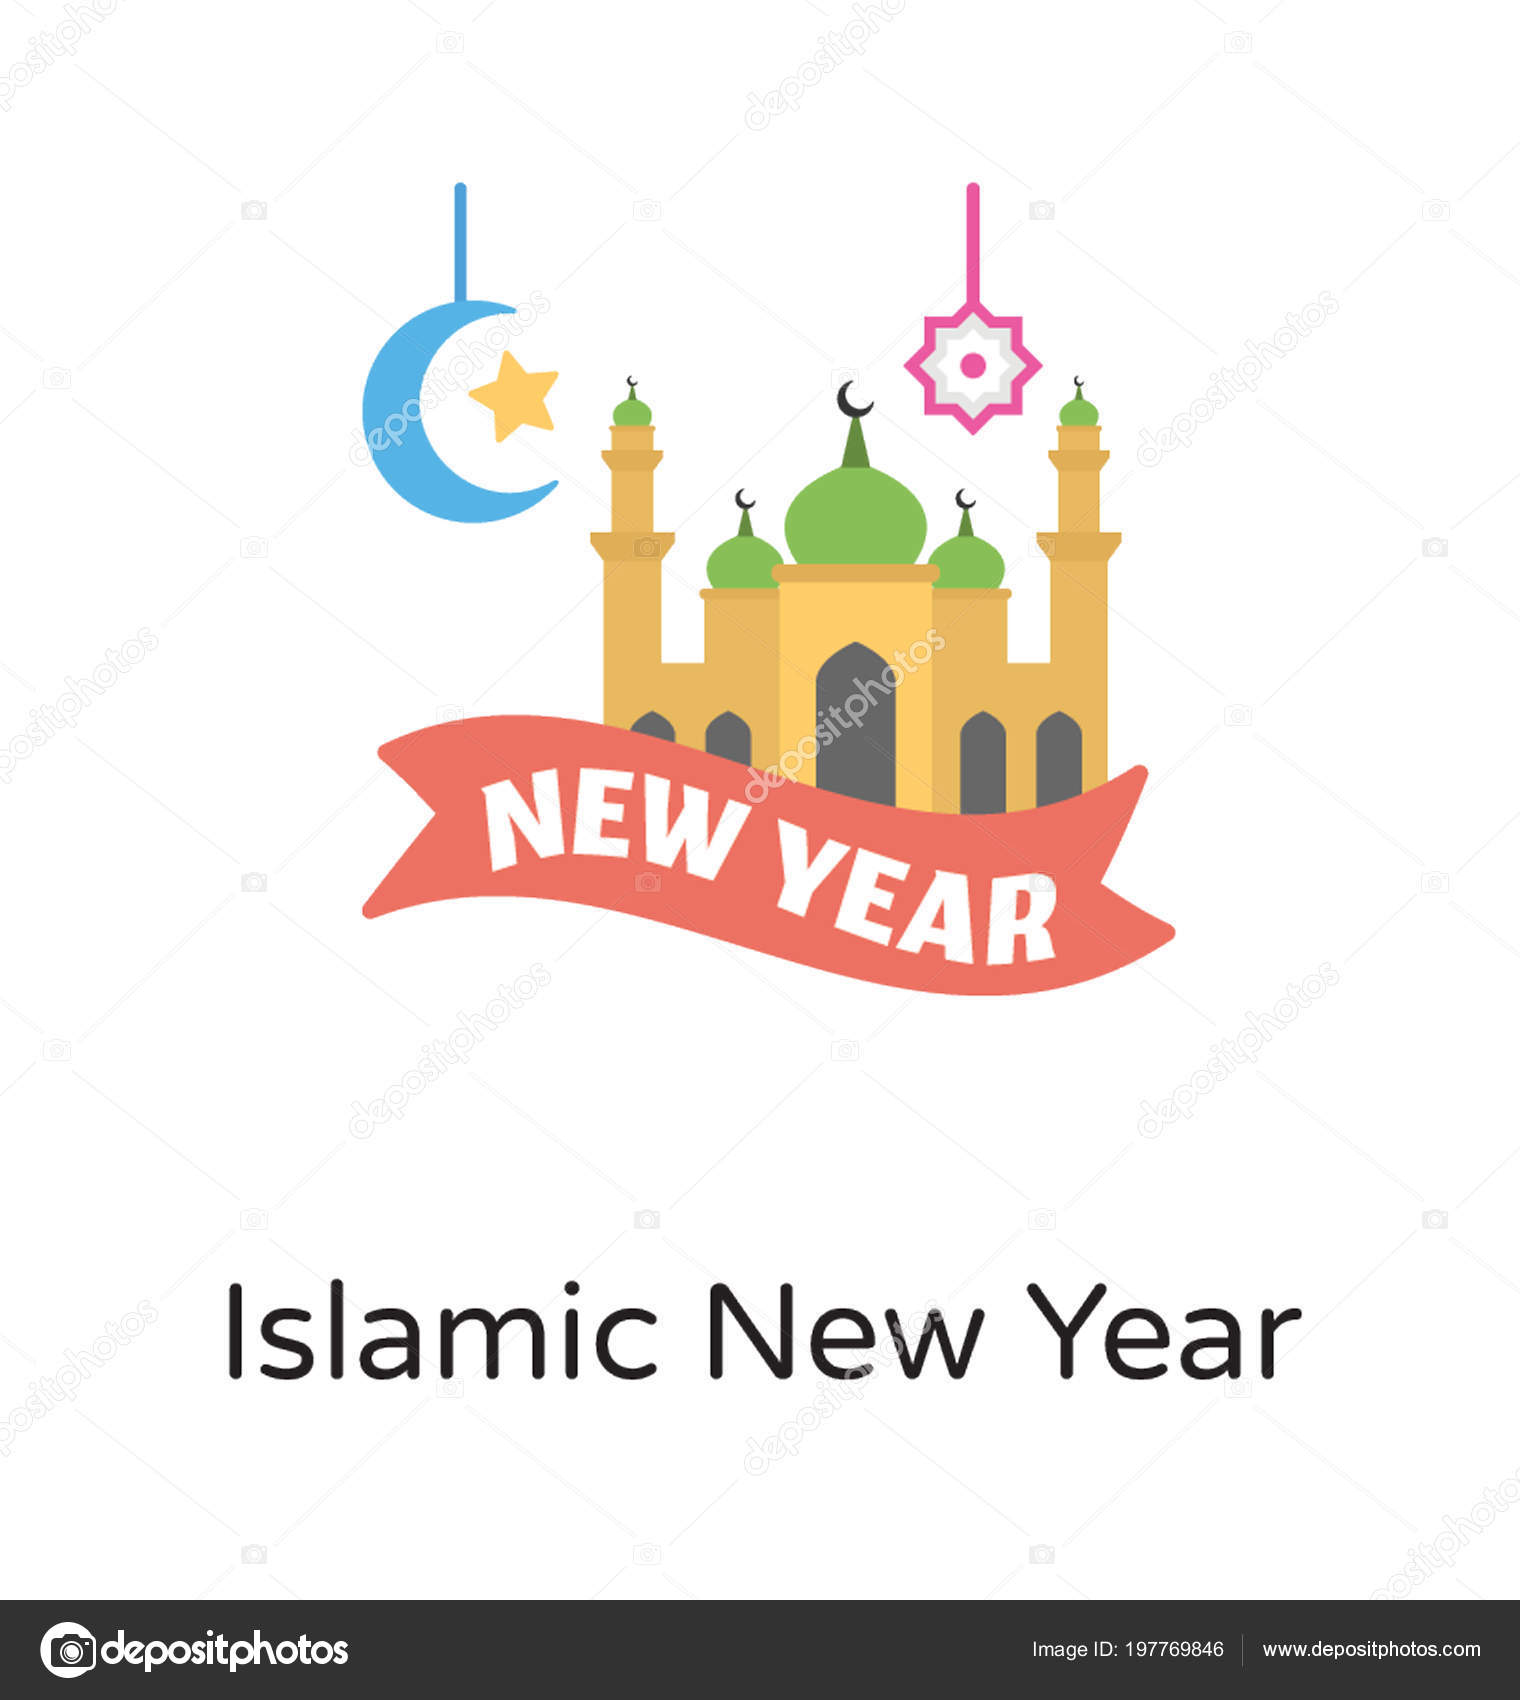 decorated islamic building decorative new year banner depicting idea islamic stock vector